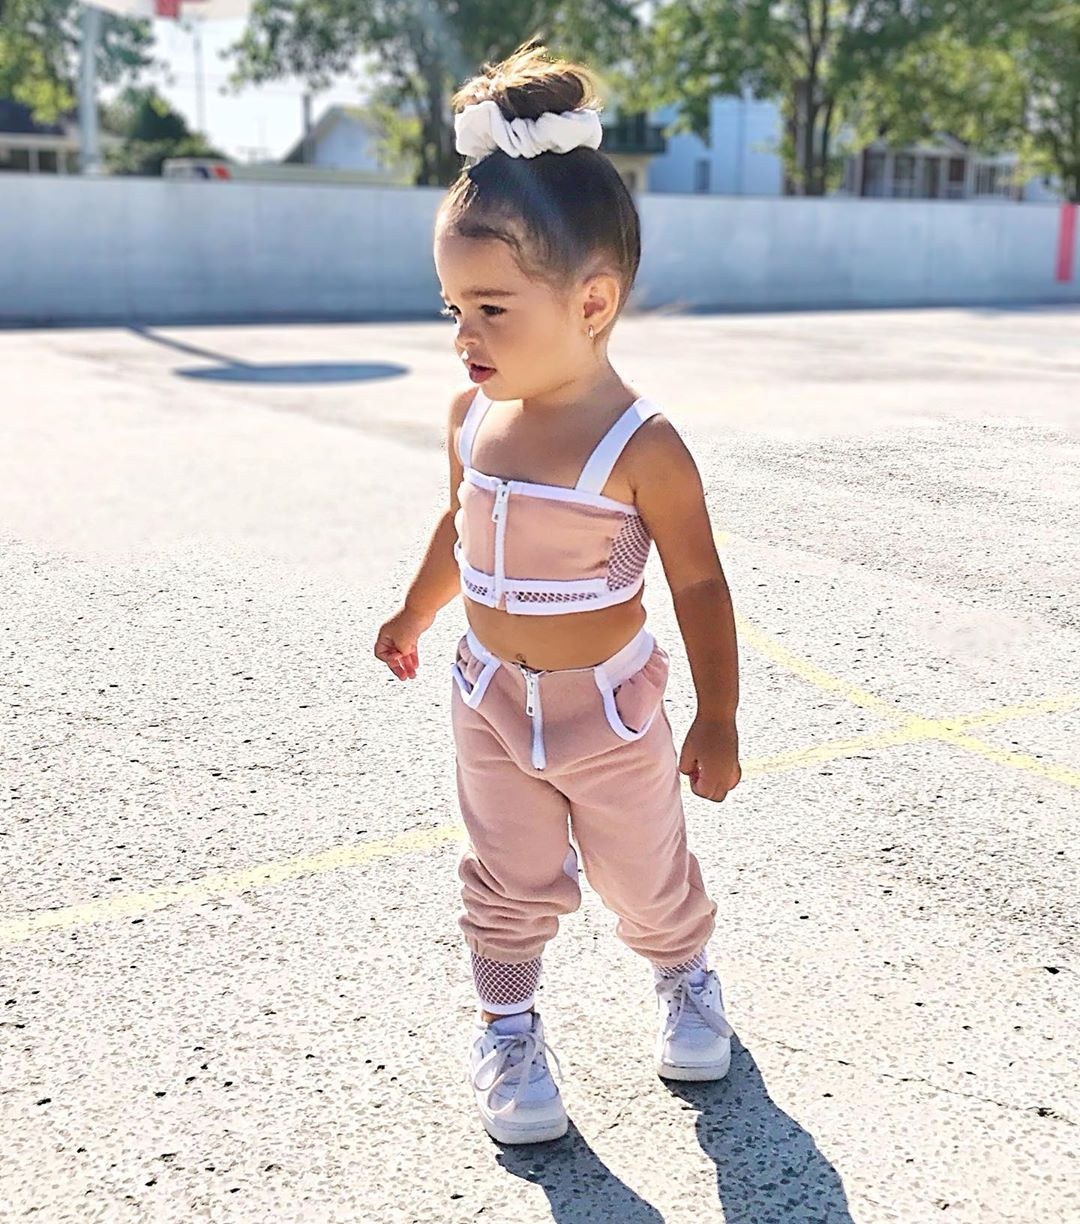 Nunkidsofficial Playtime Ootd Kids Fashionkids